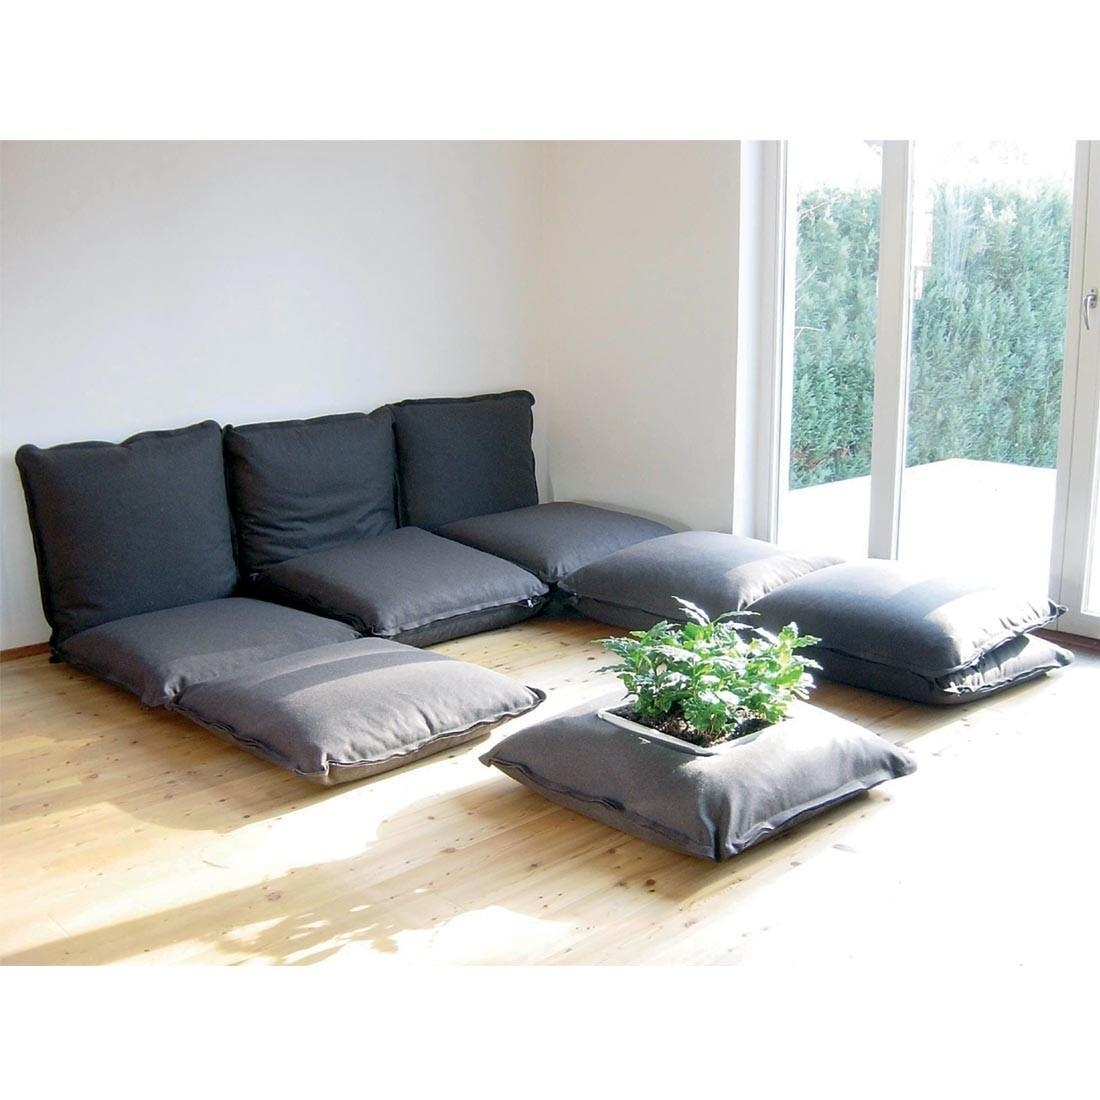 Tufted Floor Cushion Uk | Cushions Decoration In Floor Cushion Sofas (View 4 of 20)